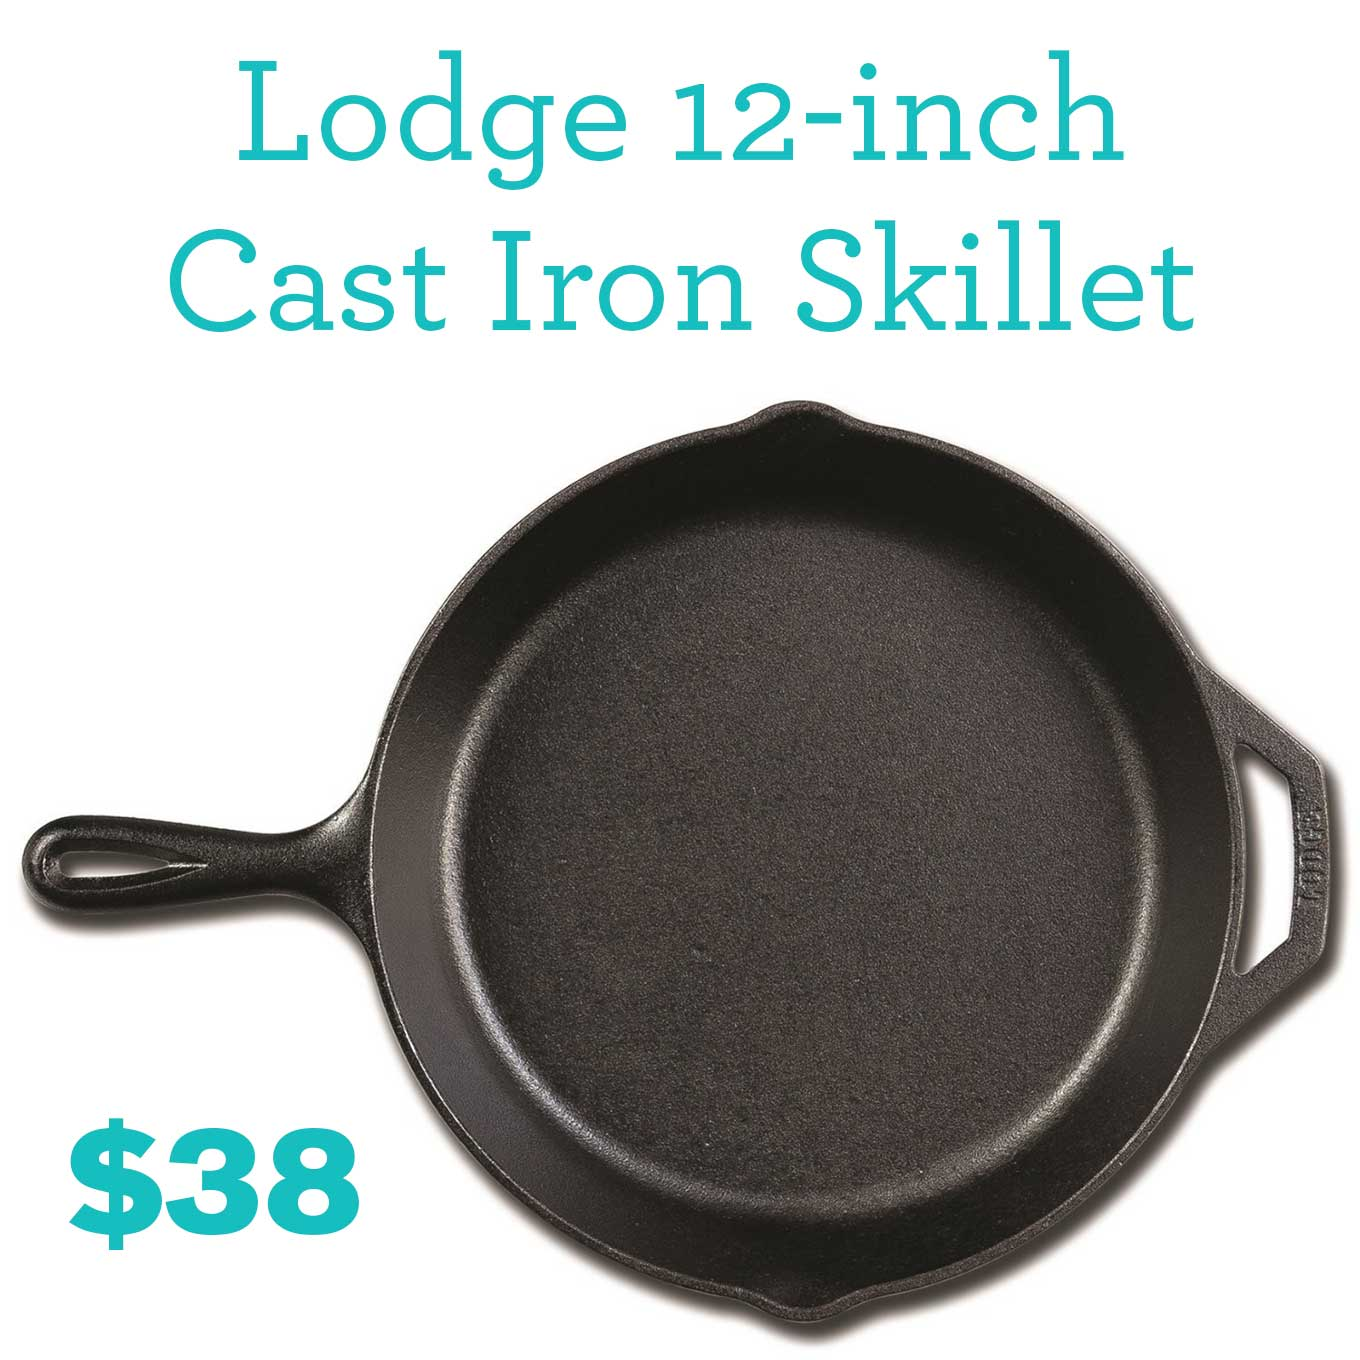 5 Kitchen Essentials Under $50 | Lodge 12-inch Cast Iron Skillet | http://eatwithinyourmeans.com